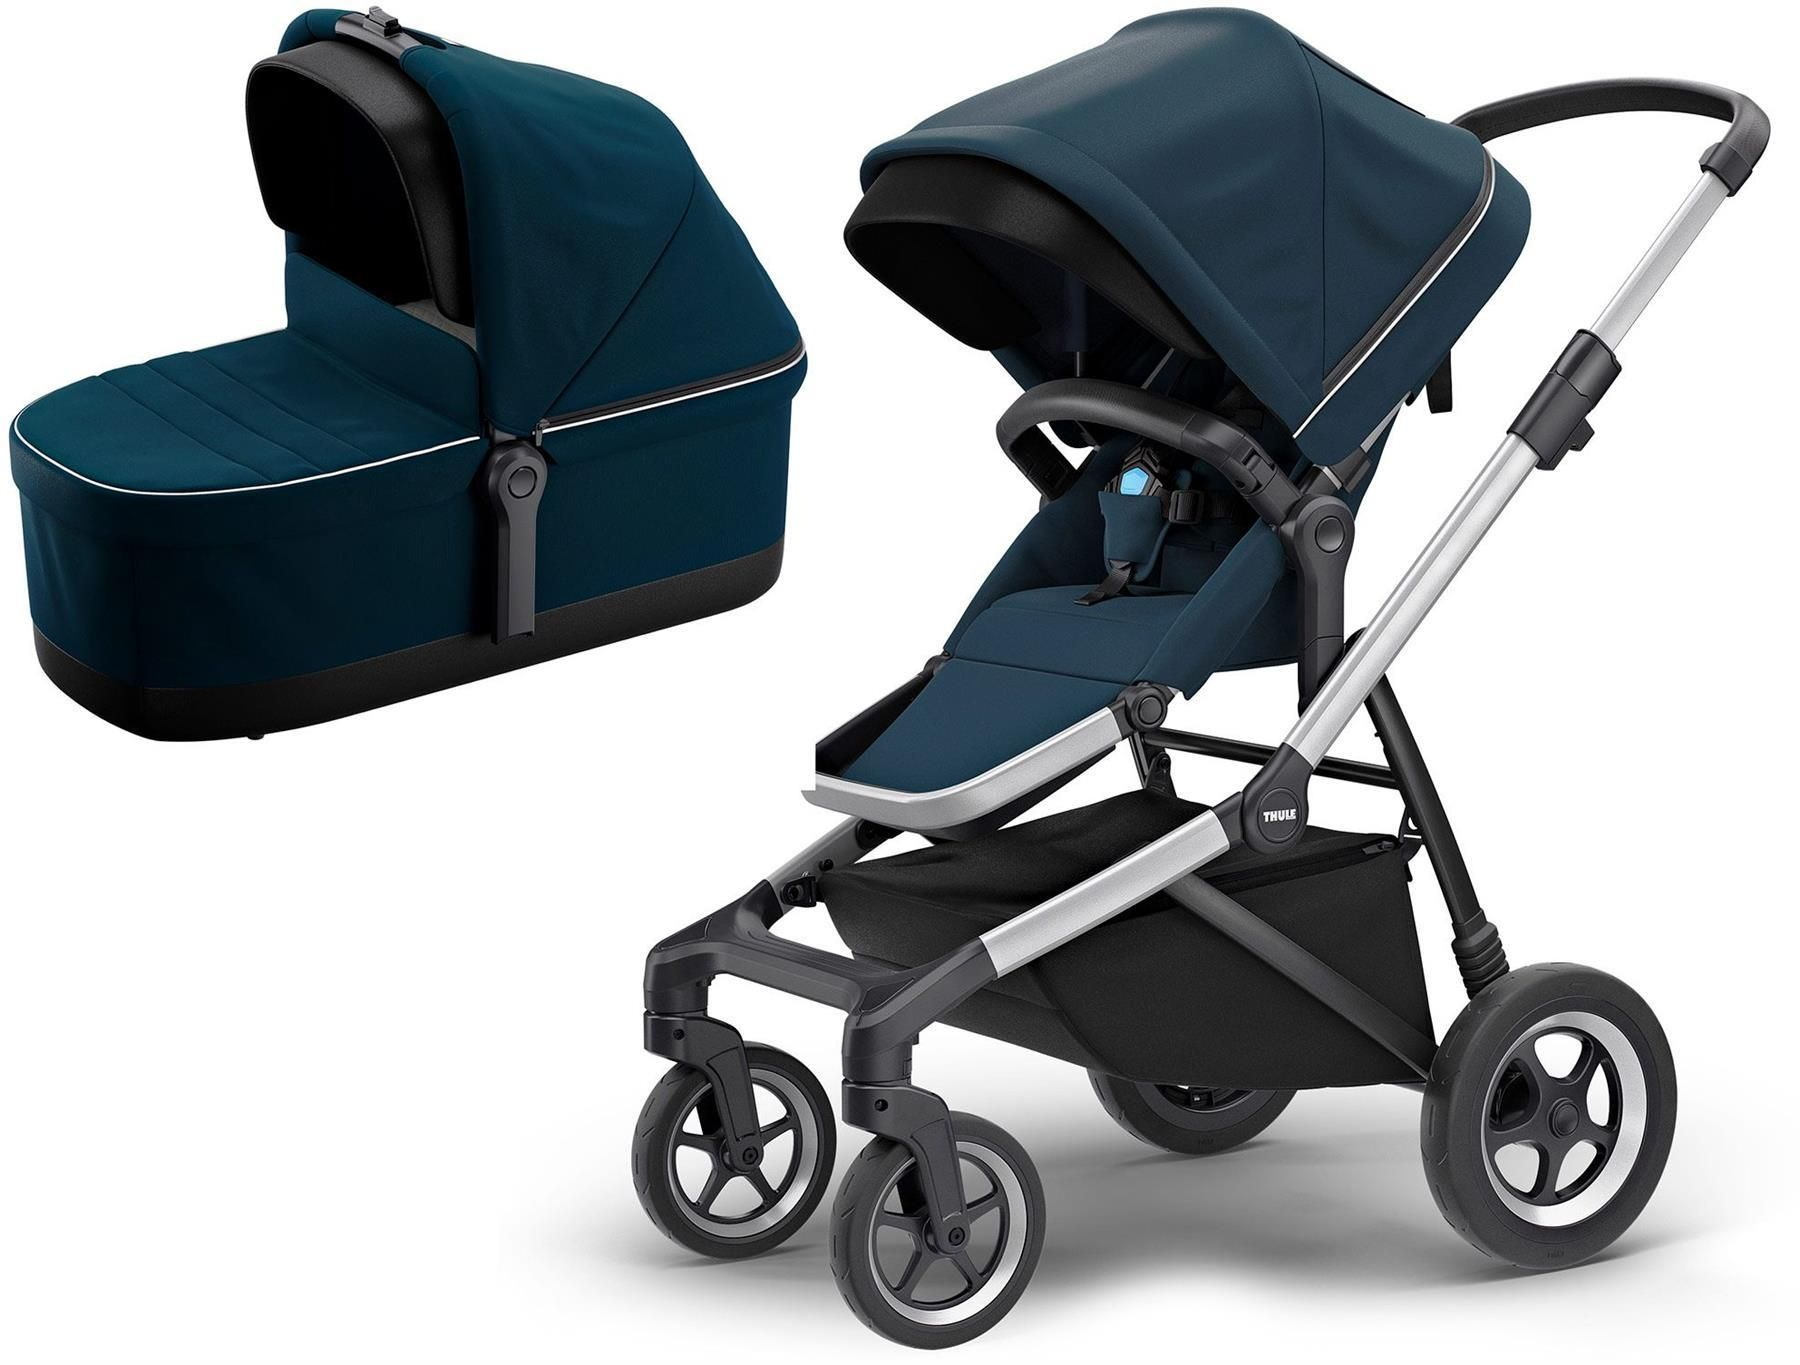 48++ Thule jogging stroller with bassinet ideas in 2021